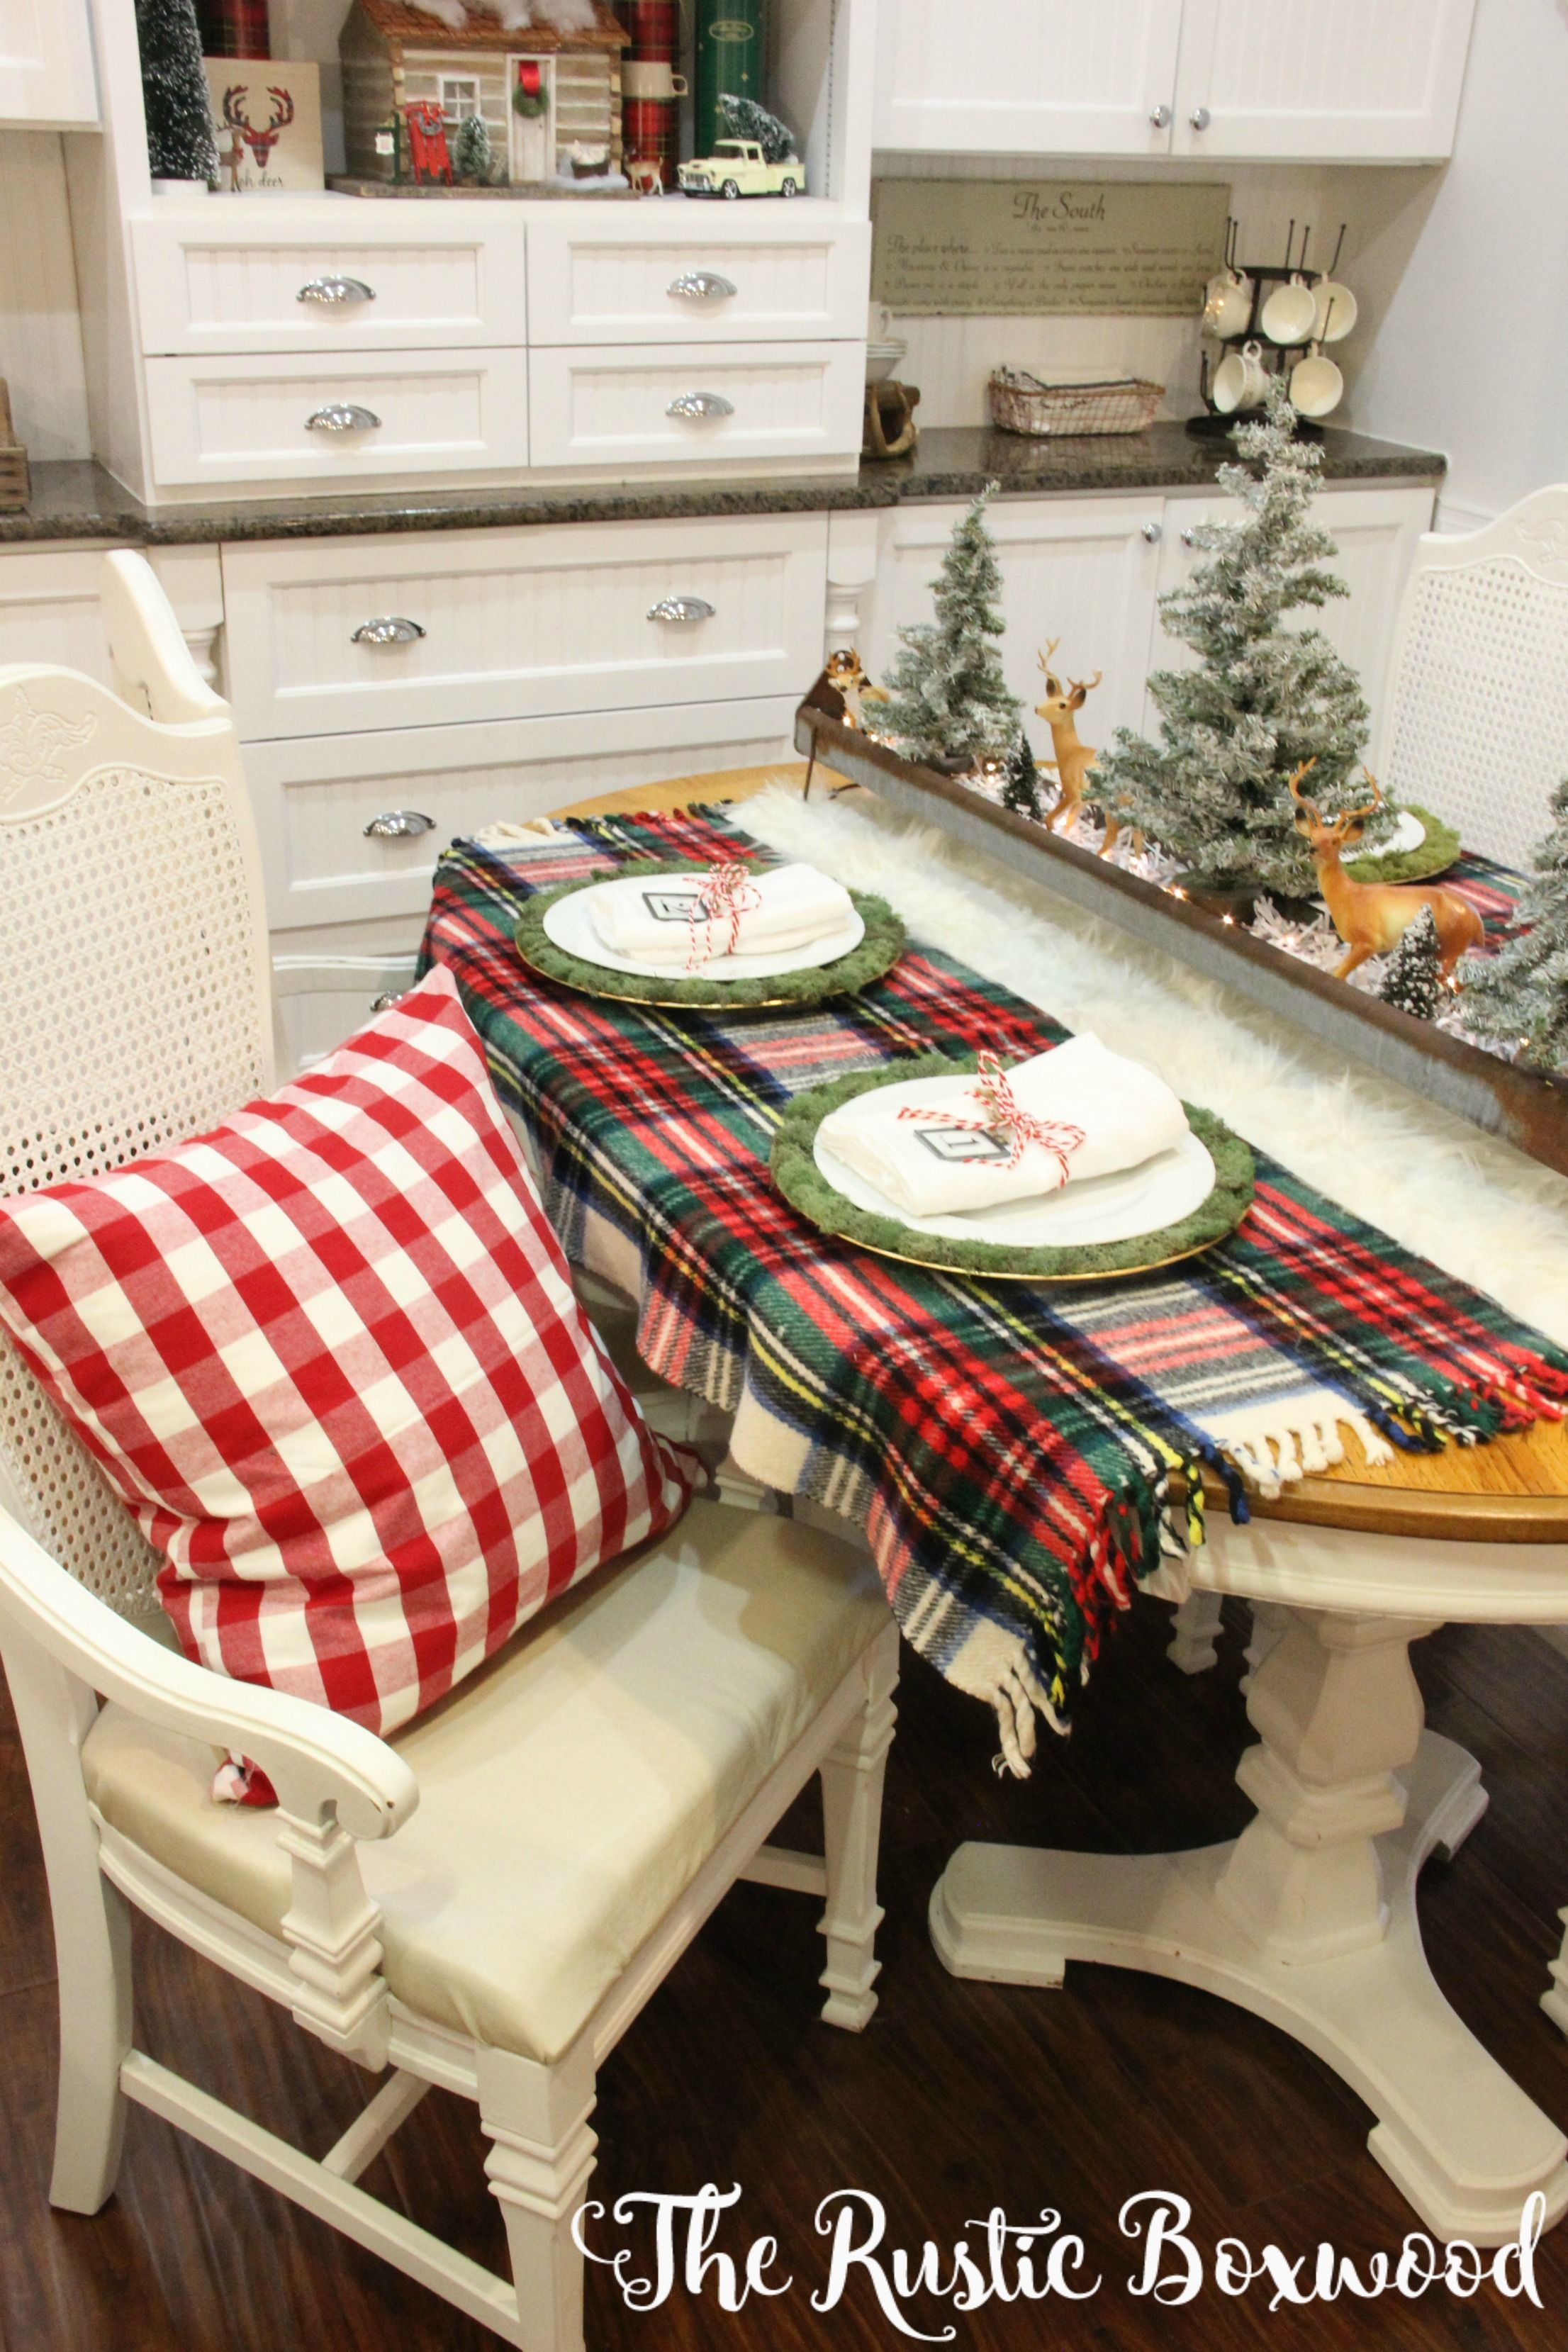 Christmas tablescape   The Rustic Boxwood   diy, farmhouse style, chicken feeder, string lights, christmas decor, christmas decorating ideas, christmas dining room, vintage, plaid, rustic, woodlands theme, woodsy decor, lodge style, woodlands christmas decor